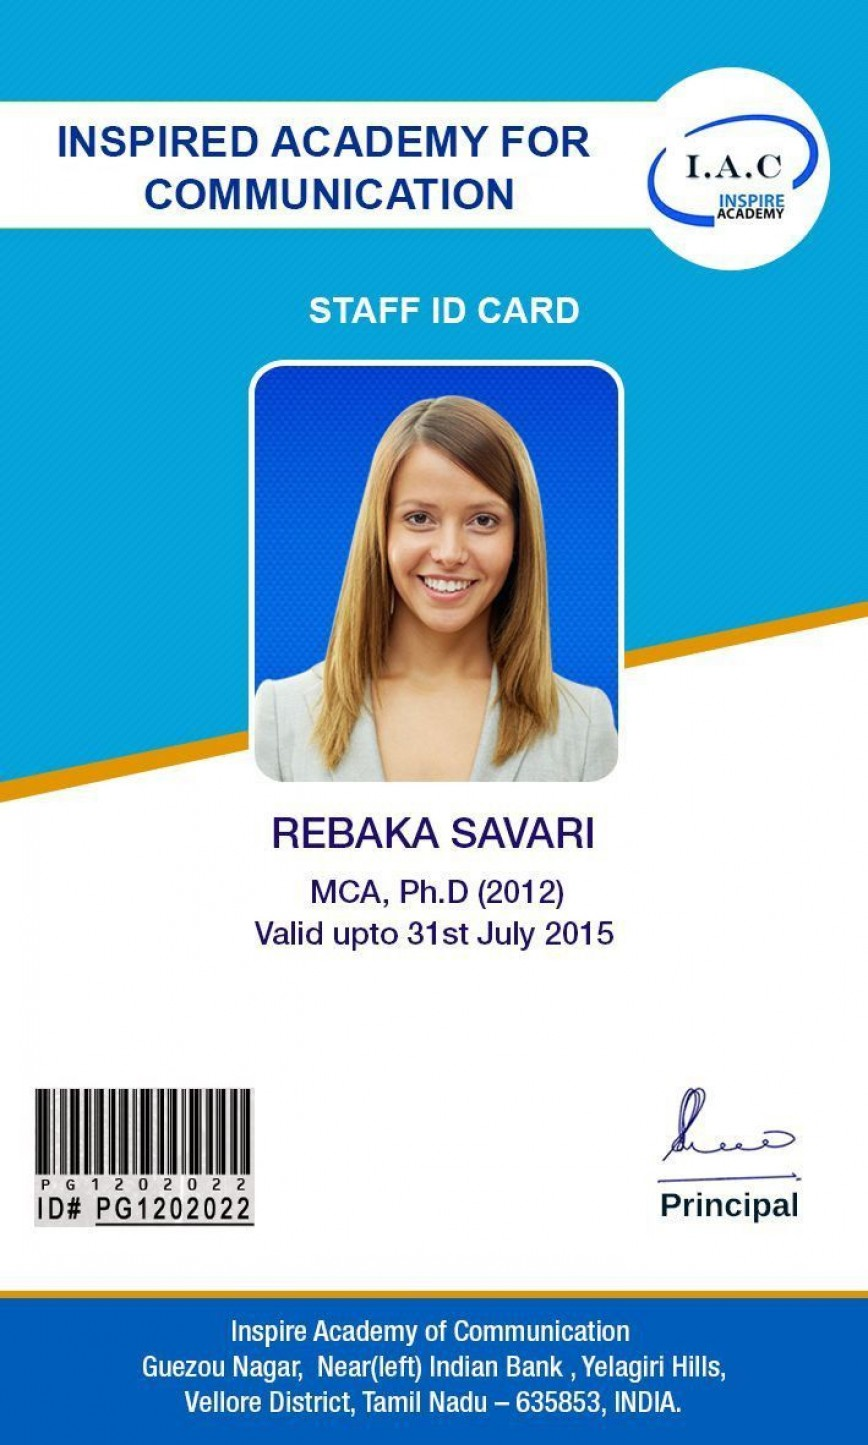 004 Archaicawful Student Id Card Template Picture  Free Psd Download Word School868